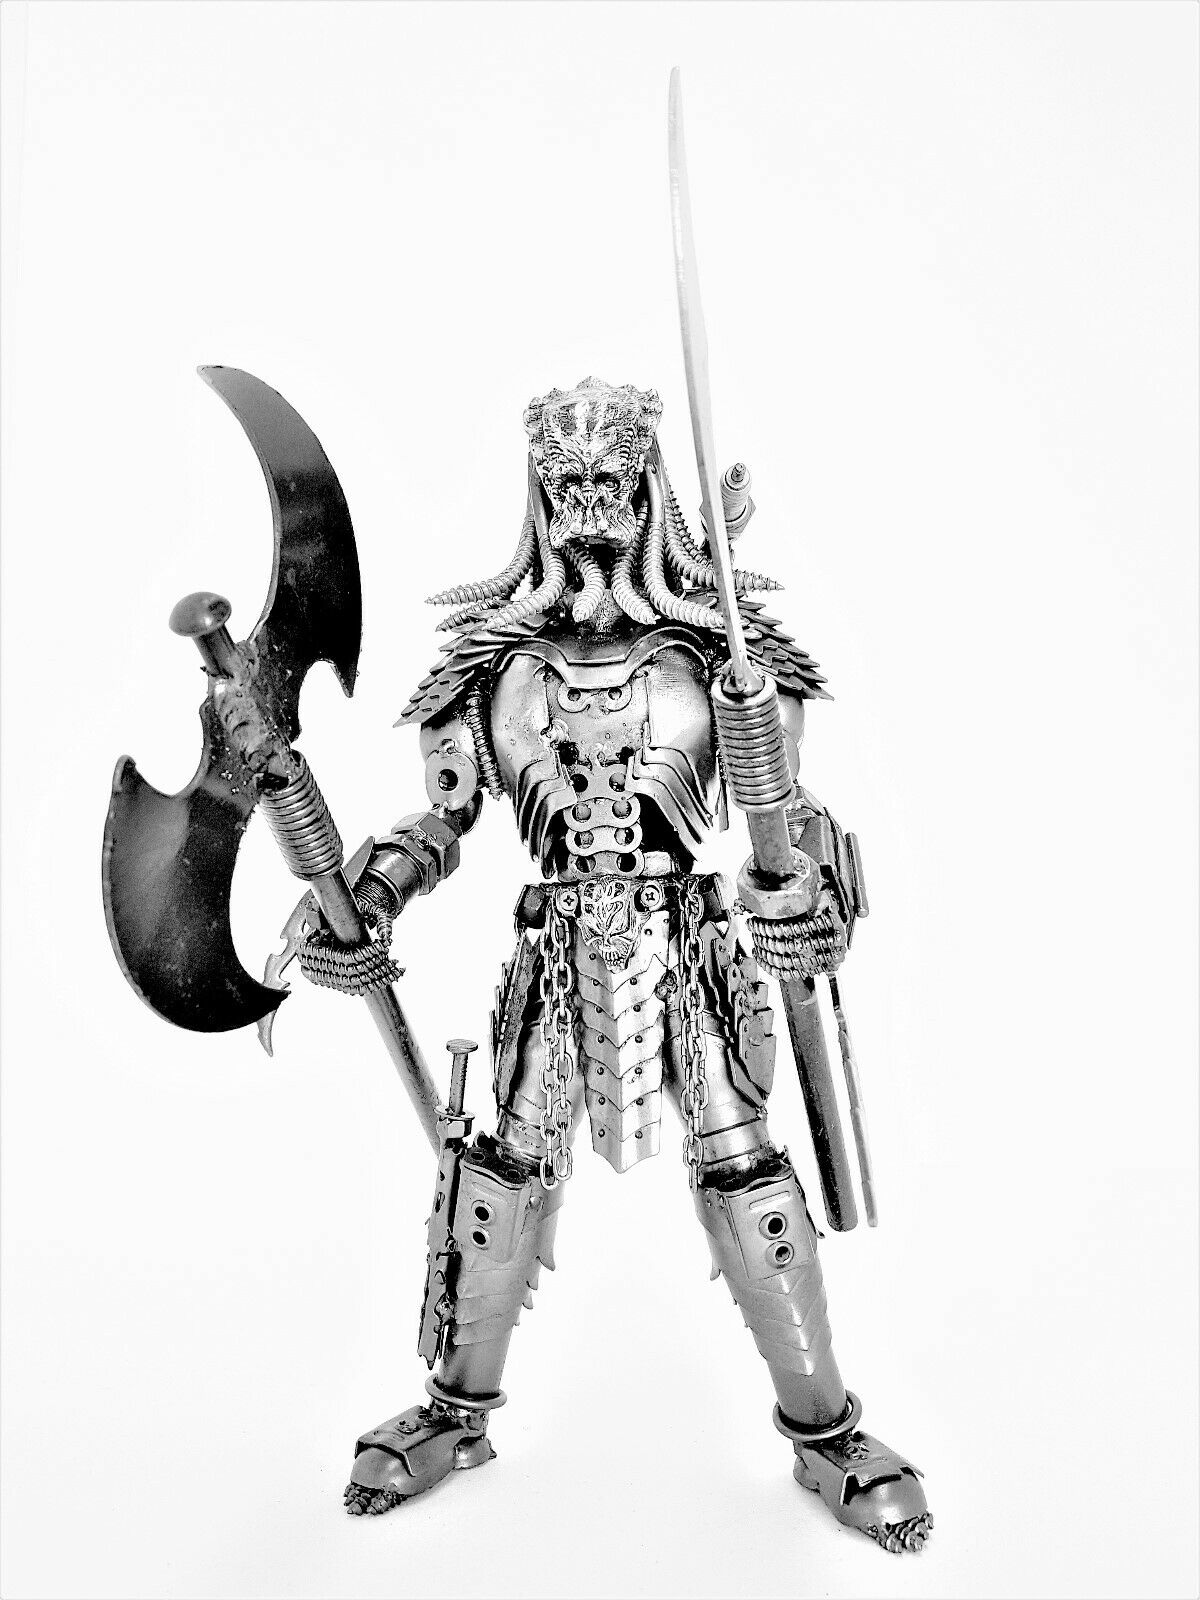 Protator 40cm With Staff and Battle Axe Figure Metal Art Productions Sculpture